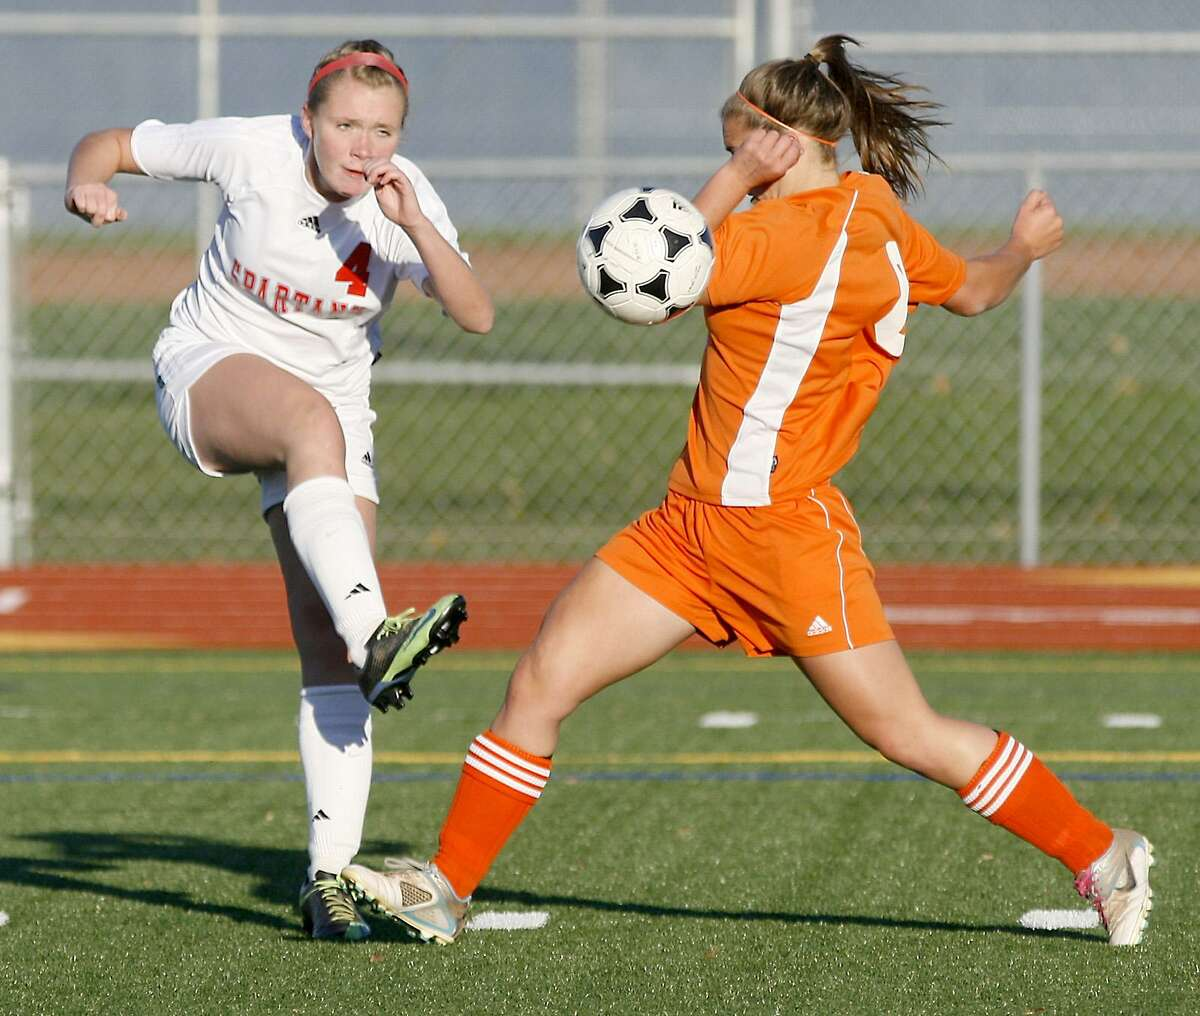 Dispatch Staff Photo by JOHN HAEGER twitter.com/oneidaphoto New Hartford's Lexie Raynard (4) crosses the ball into the center of the field as Oneida's Emily LaSalle (6) defends in the first half of the Sec III prelim in New Hartford on Tuesday, Oct. 25, 2011.